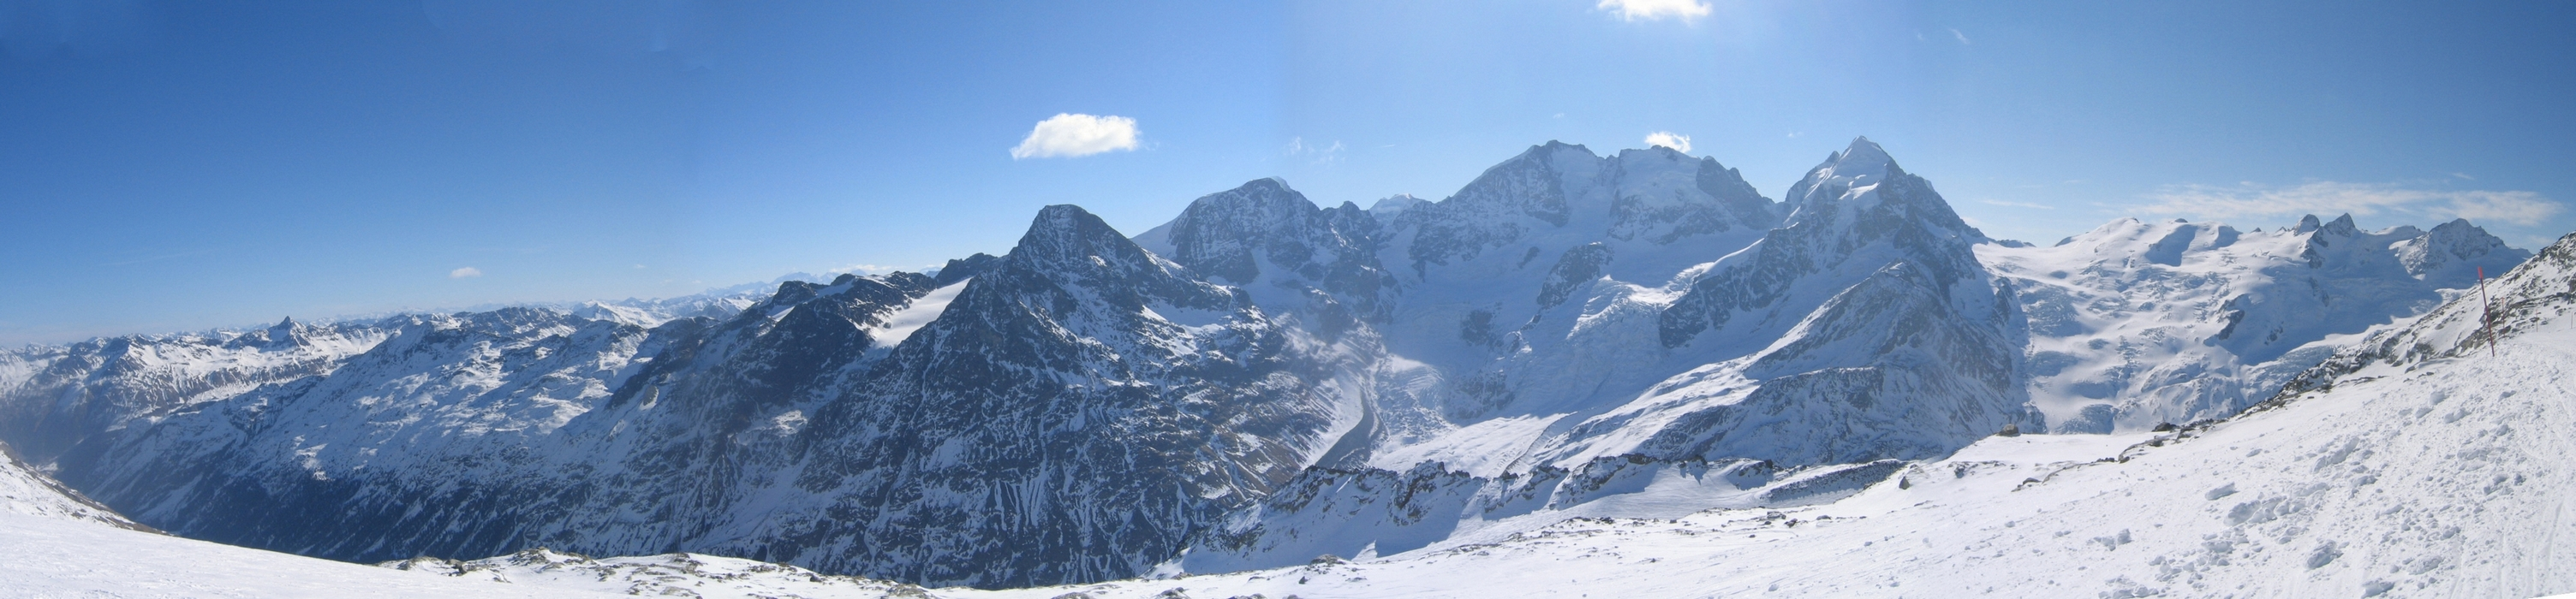 Piz Surlej - Piz San Gian Bernina Switzerland panorama 18